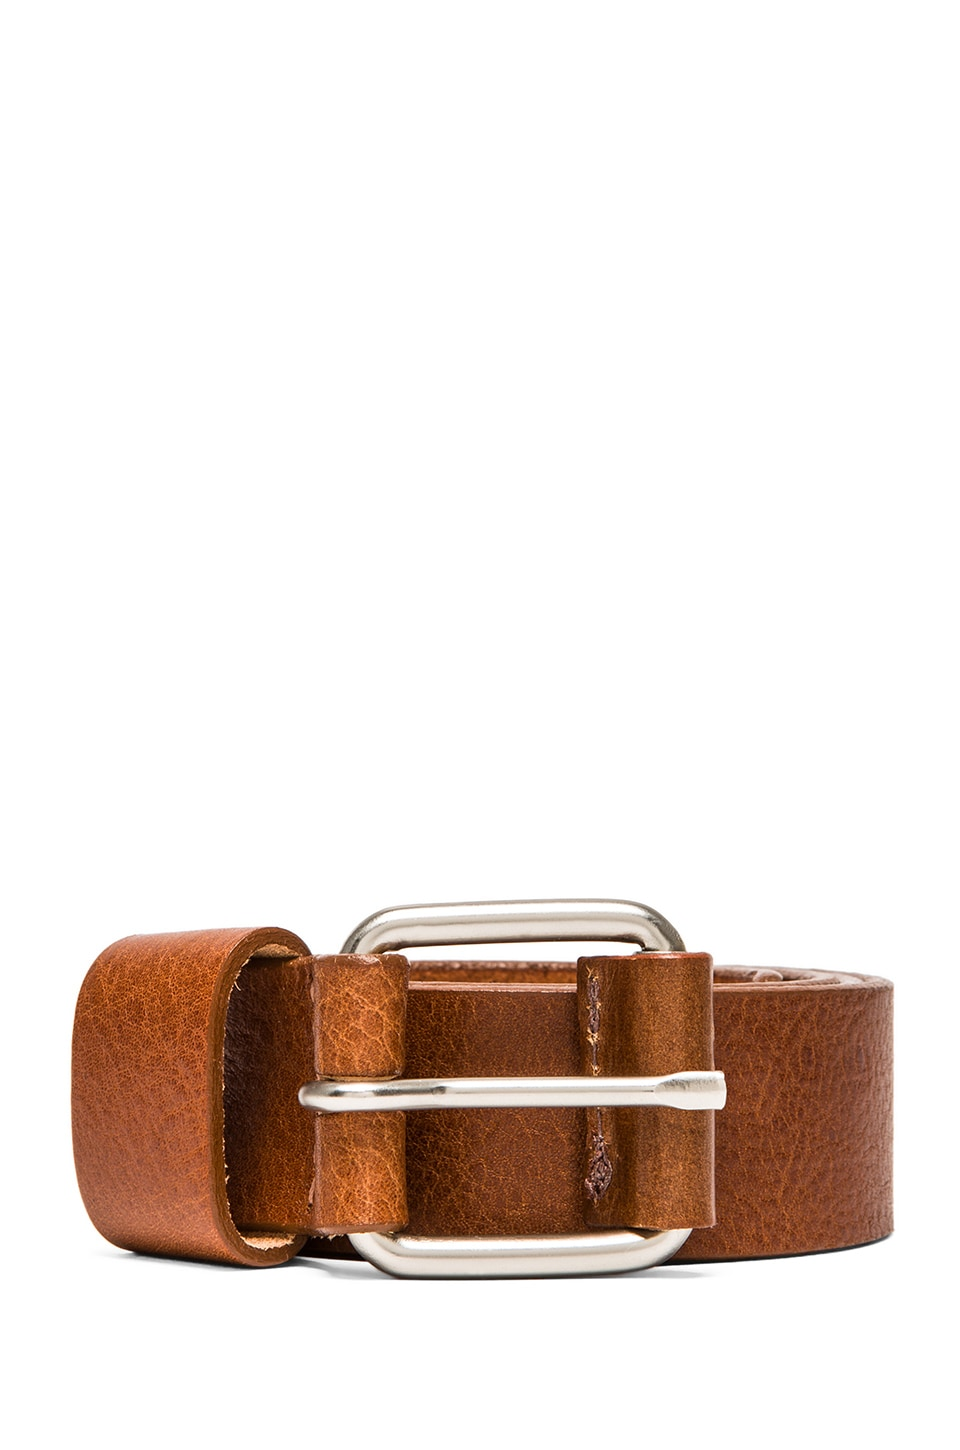 United Stock Dry Goods Square Buckle Belt in Tan